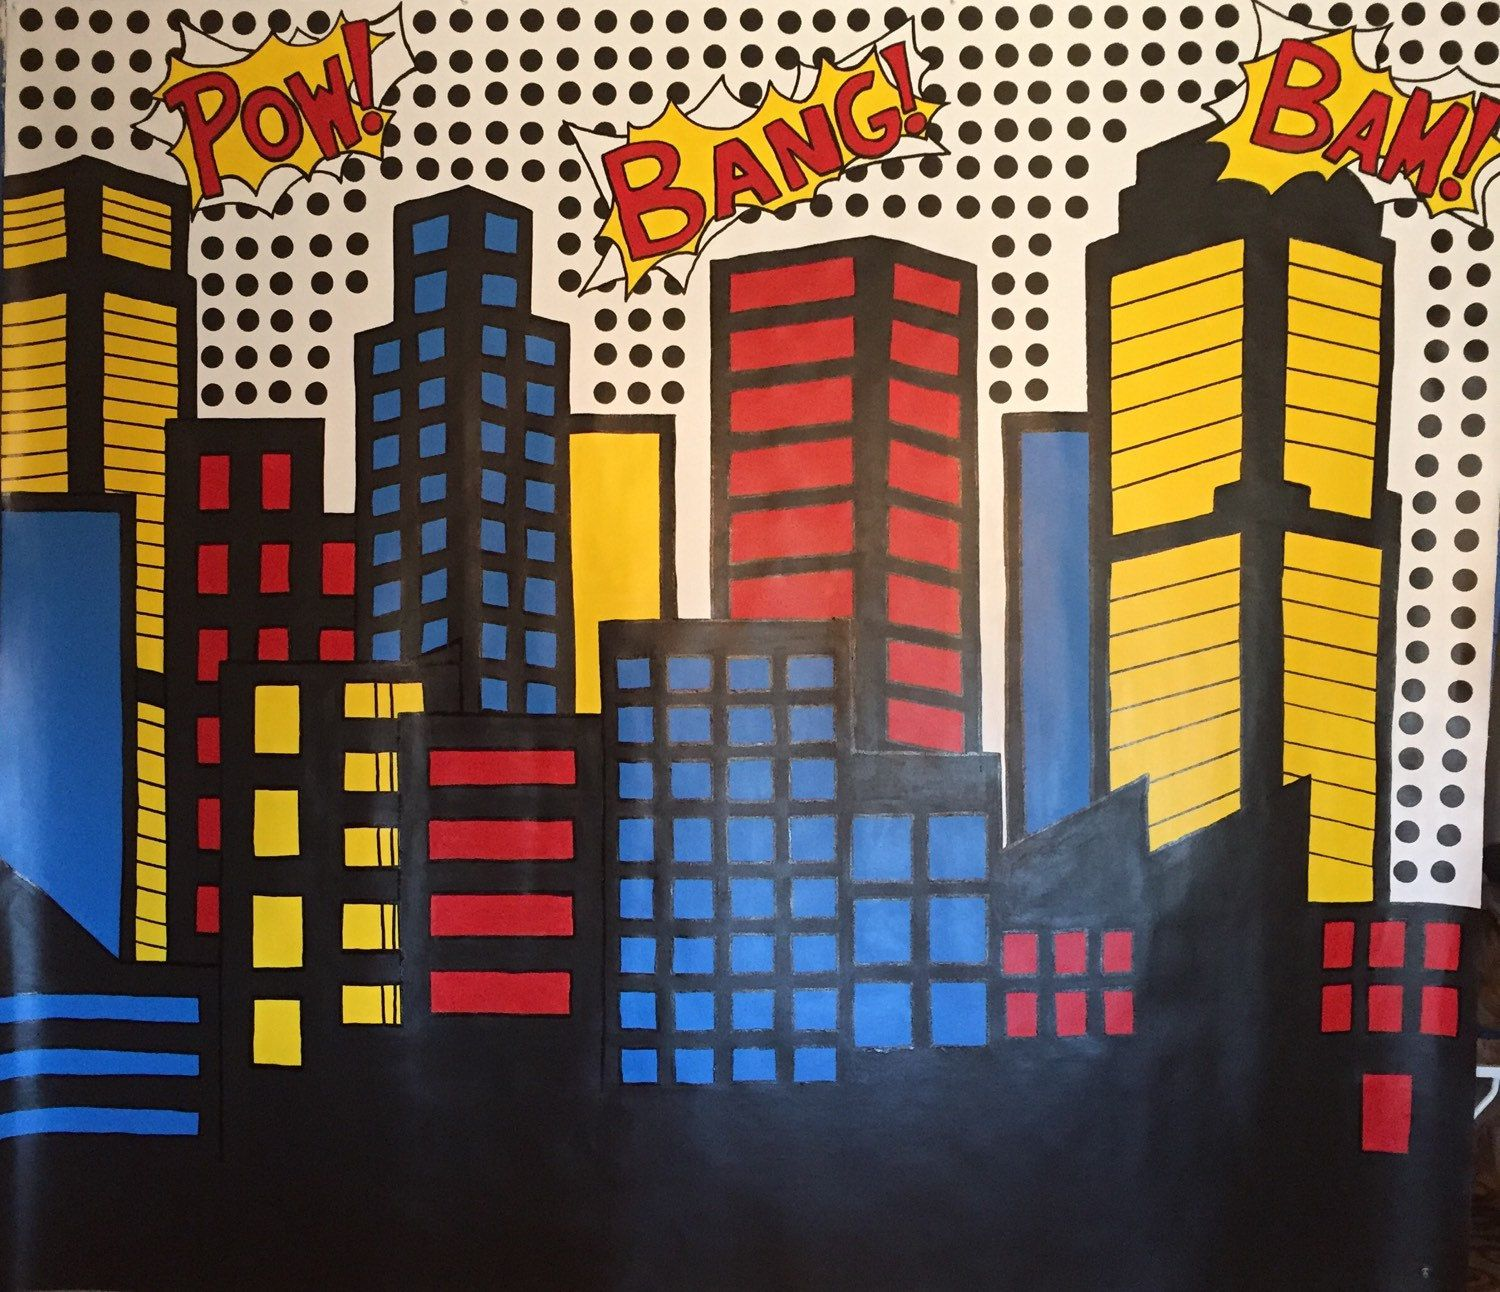 Backdrop superhero party printables batman background backdrop - Foam Superhero Backdrop Tutorial Lots Of Party Ideas You Can Adapt For A